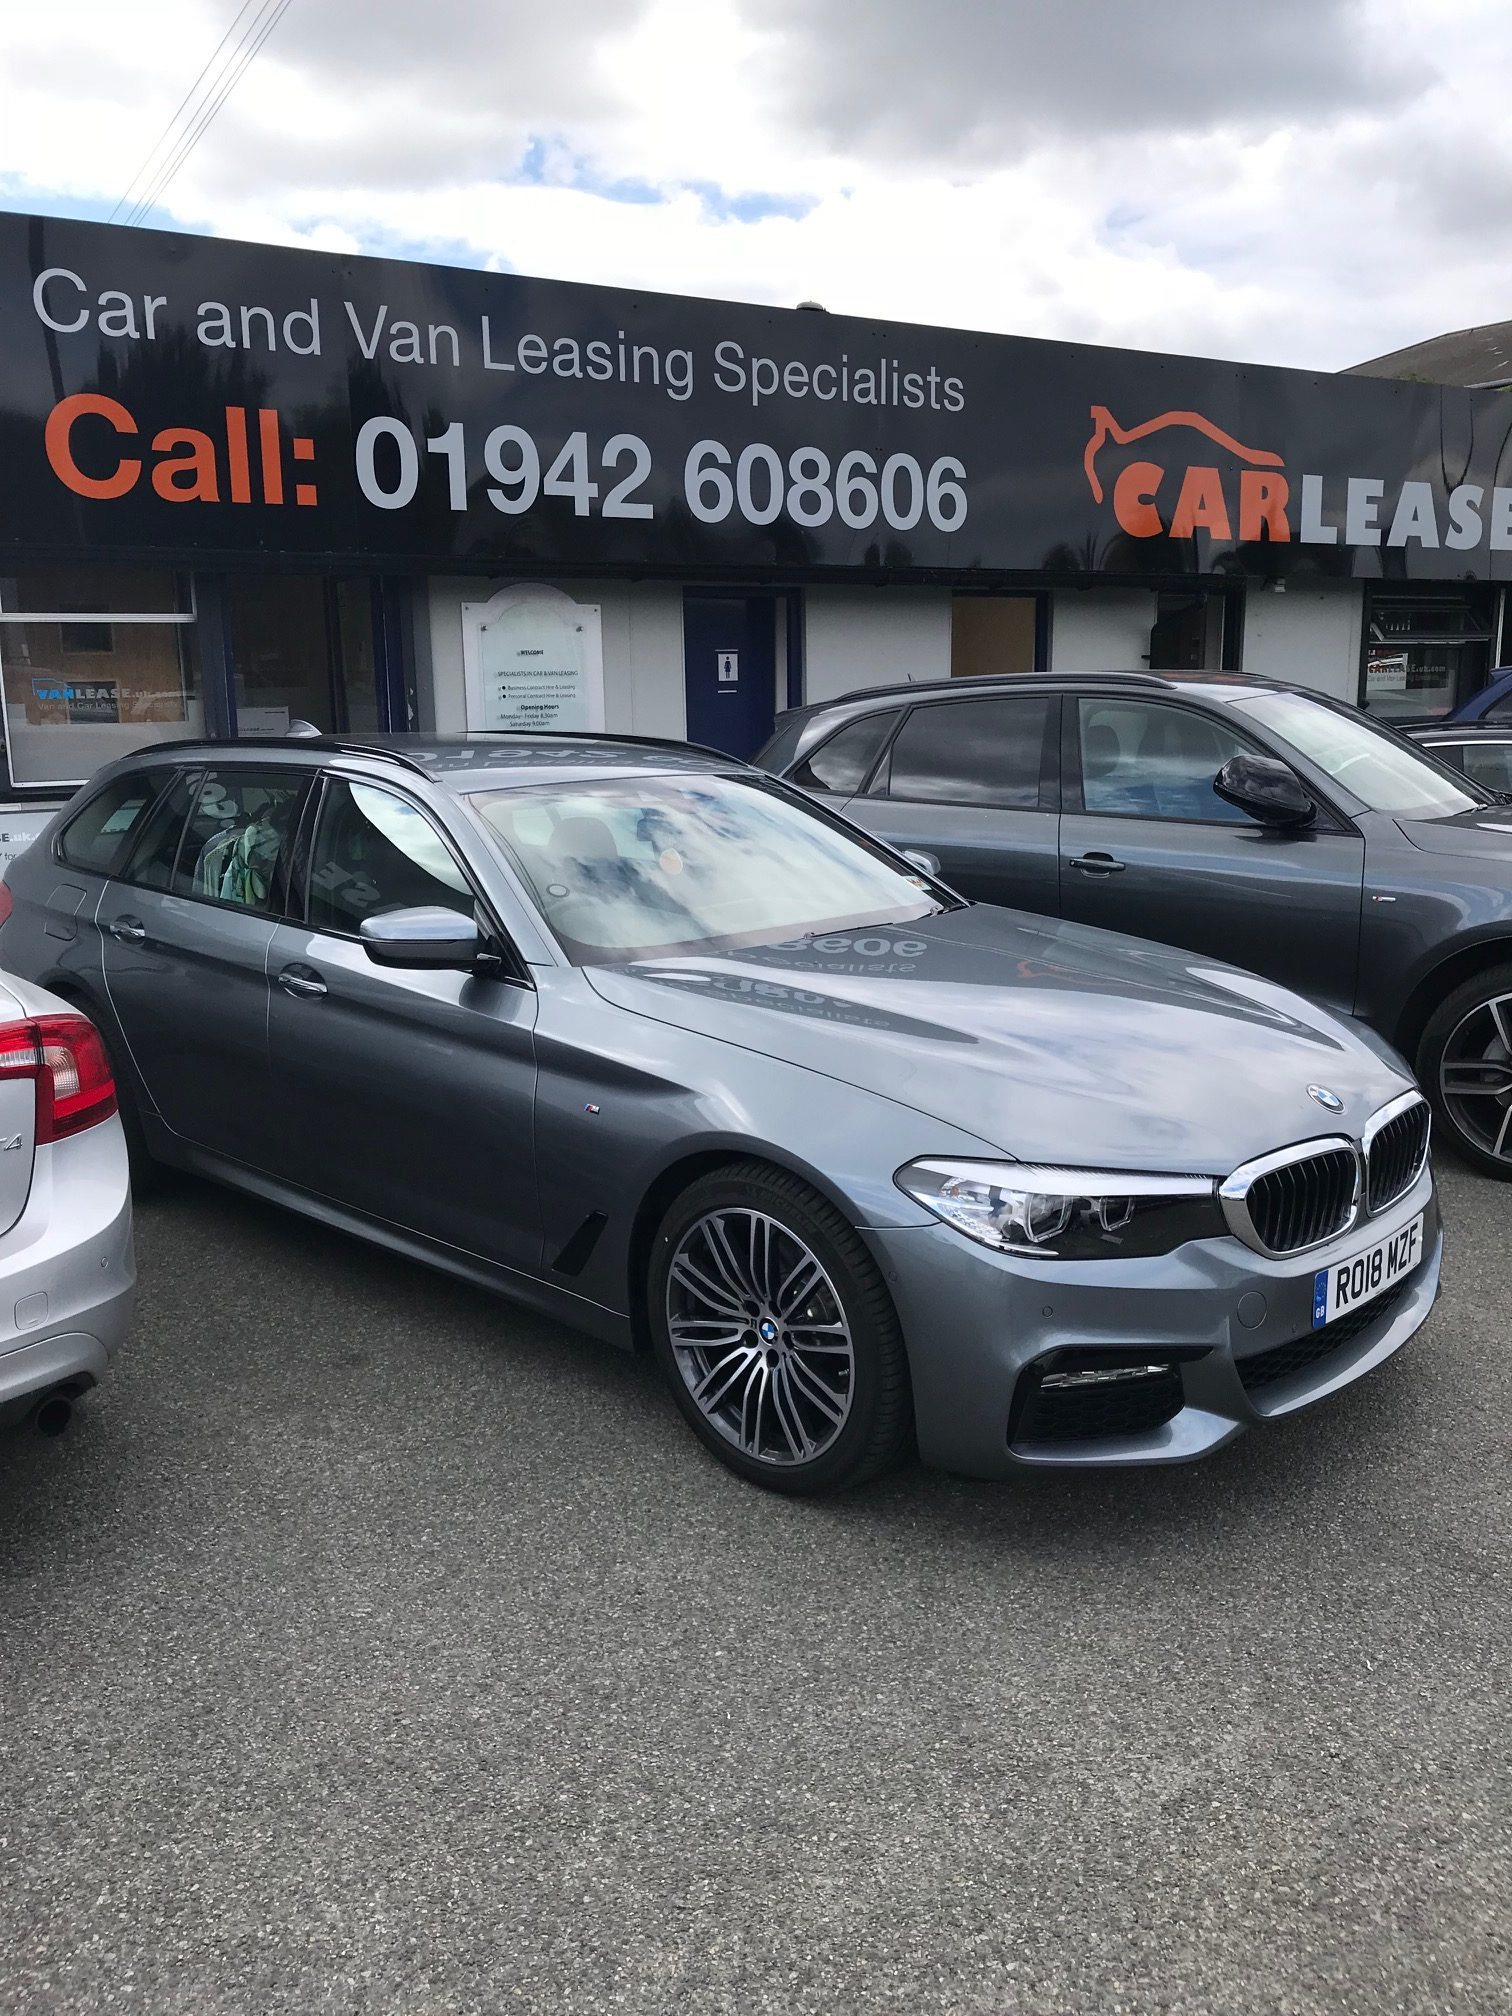 BMW 5 SERIES TOURING 520i M Sport 5dr Auto (Petrol) Car Leasing Best offers